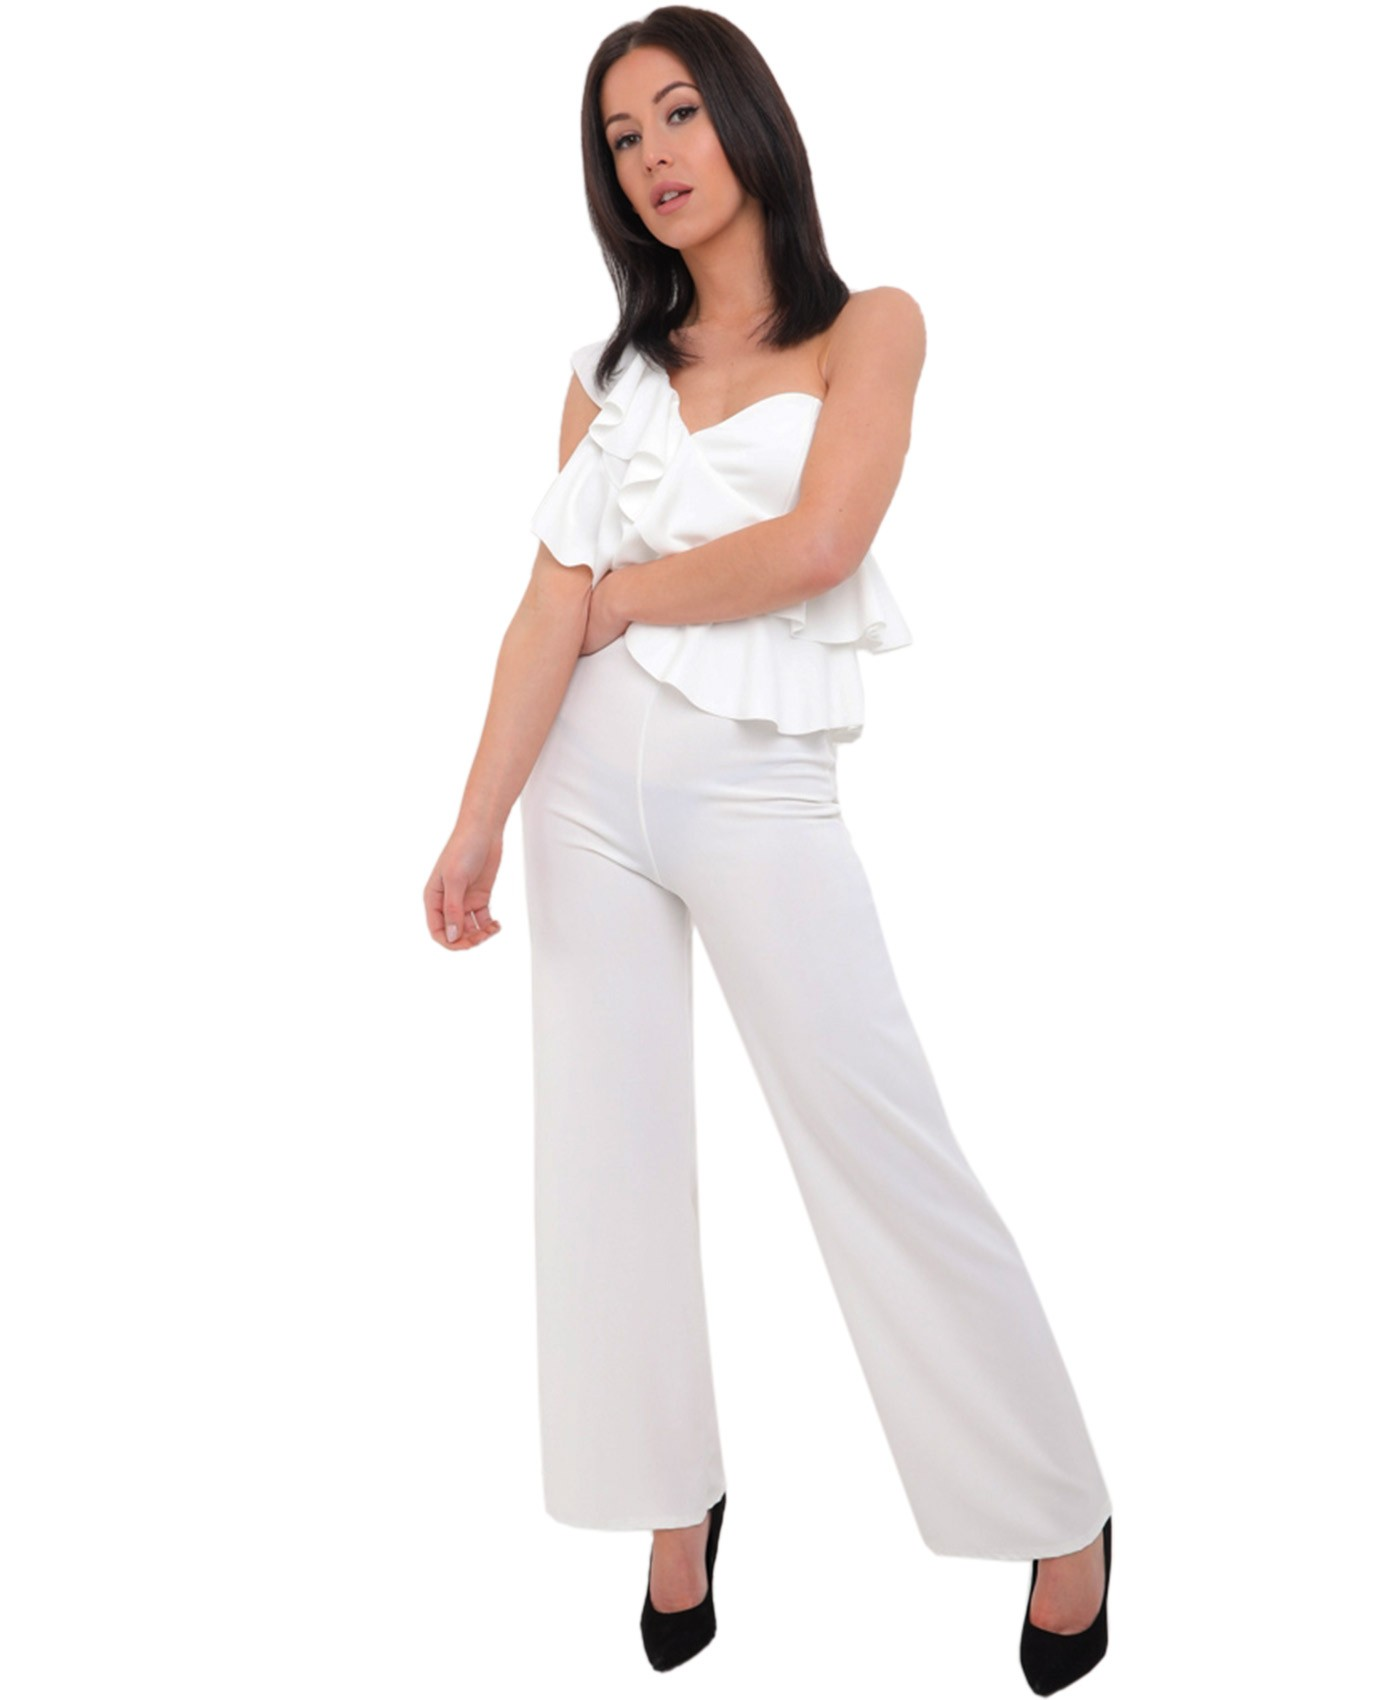 White-One-Shoulder-Frill-Jumpsuit-2